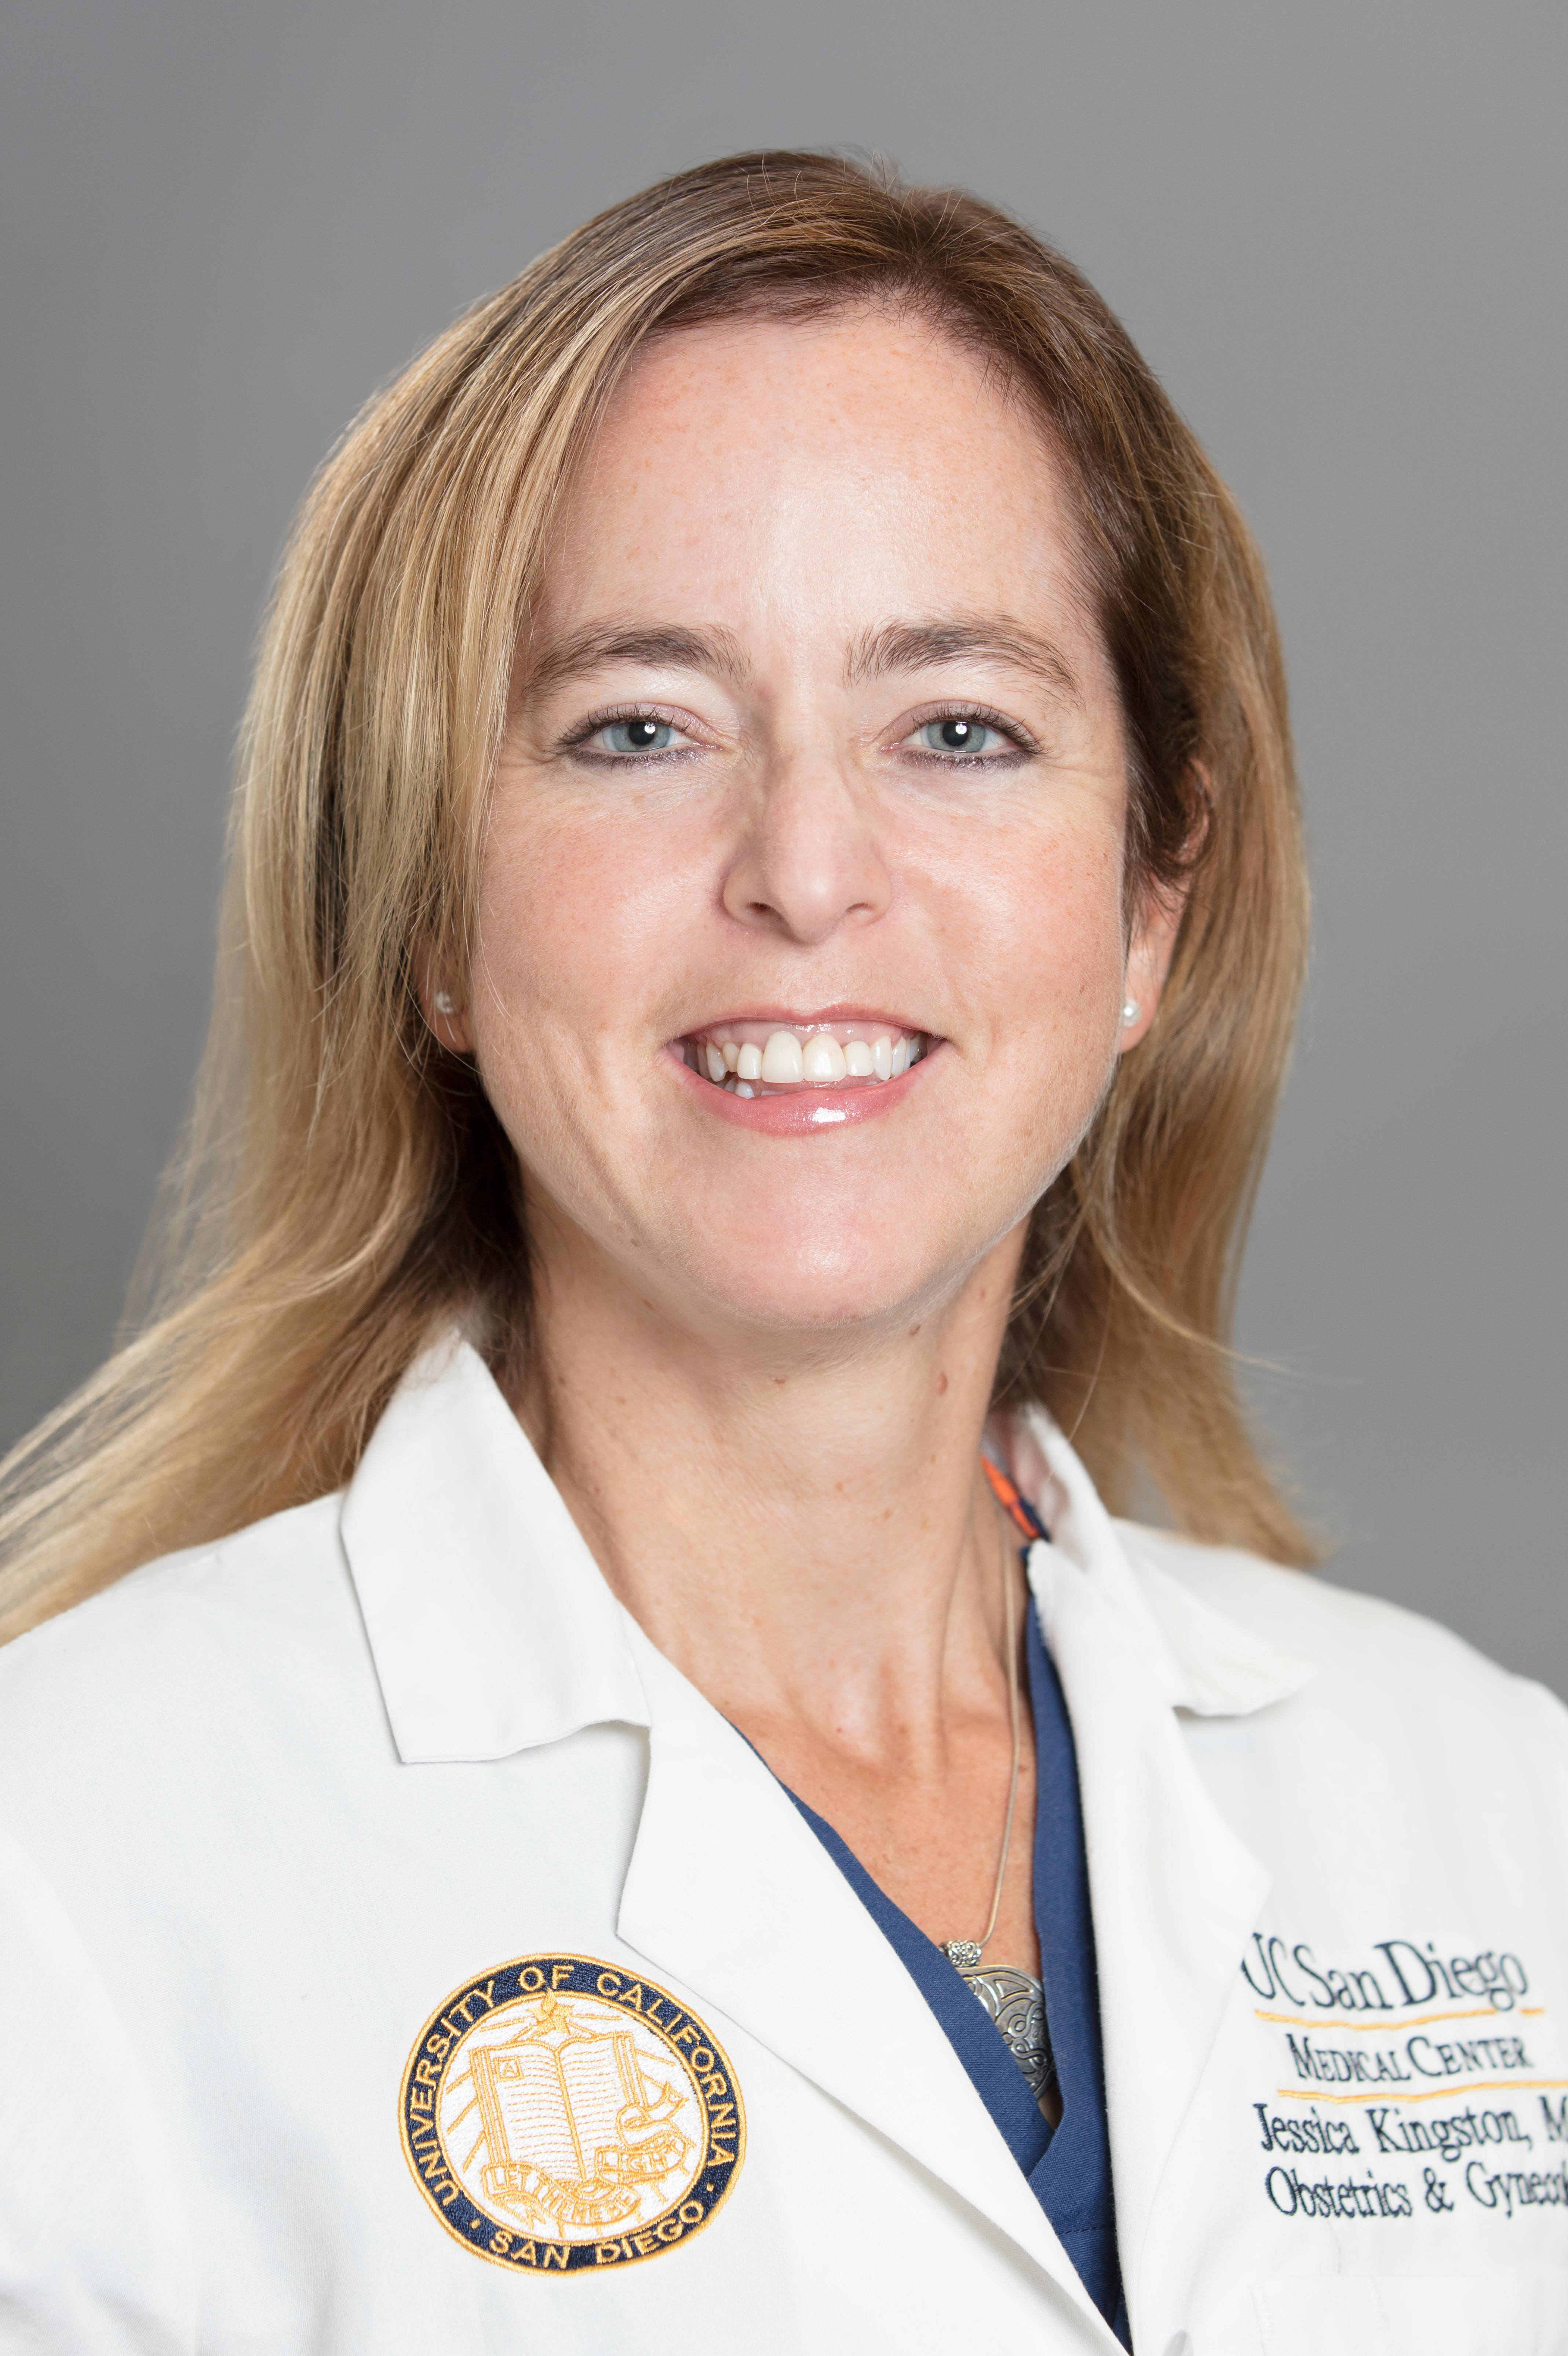 Image For Dr. Jessica  Kingston MD